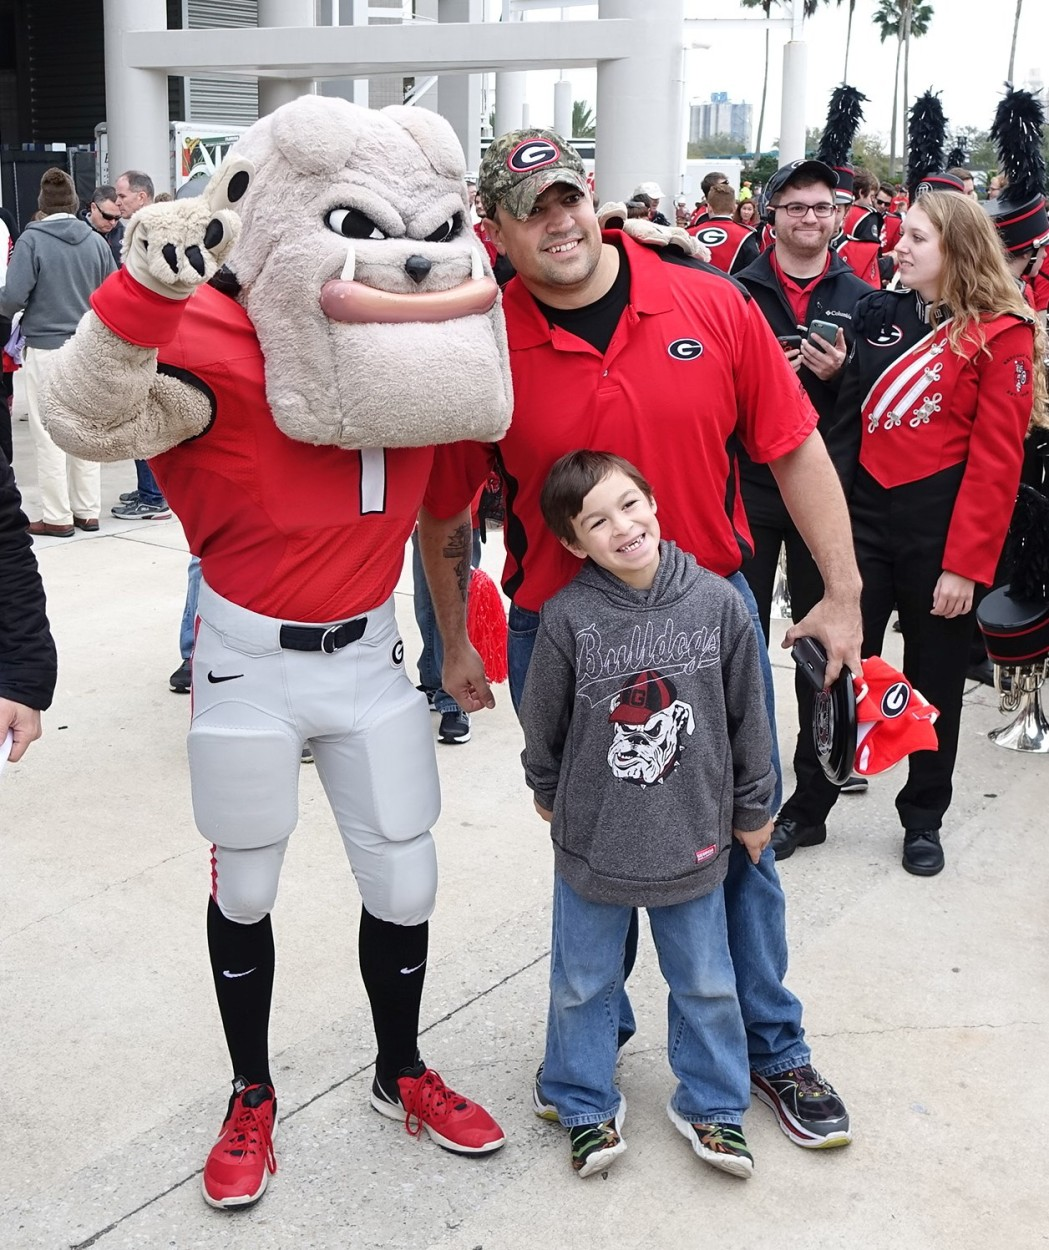 Hairy Dawg always eager to pose with fans for a photo op - Dawg Walk - TaxSlayer Bowl - 02-JAN-2016 (Photo by Greg Poole)